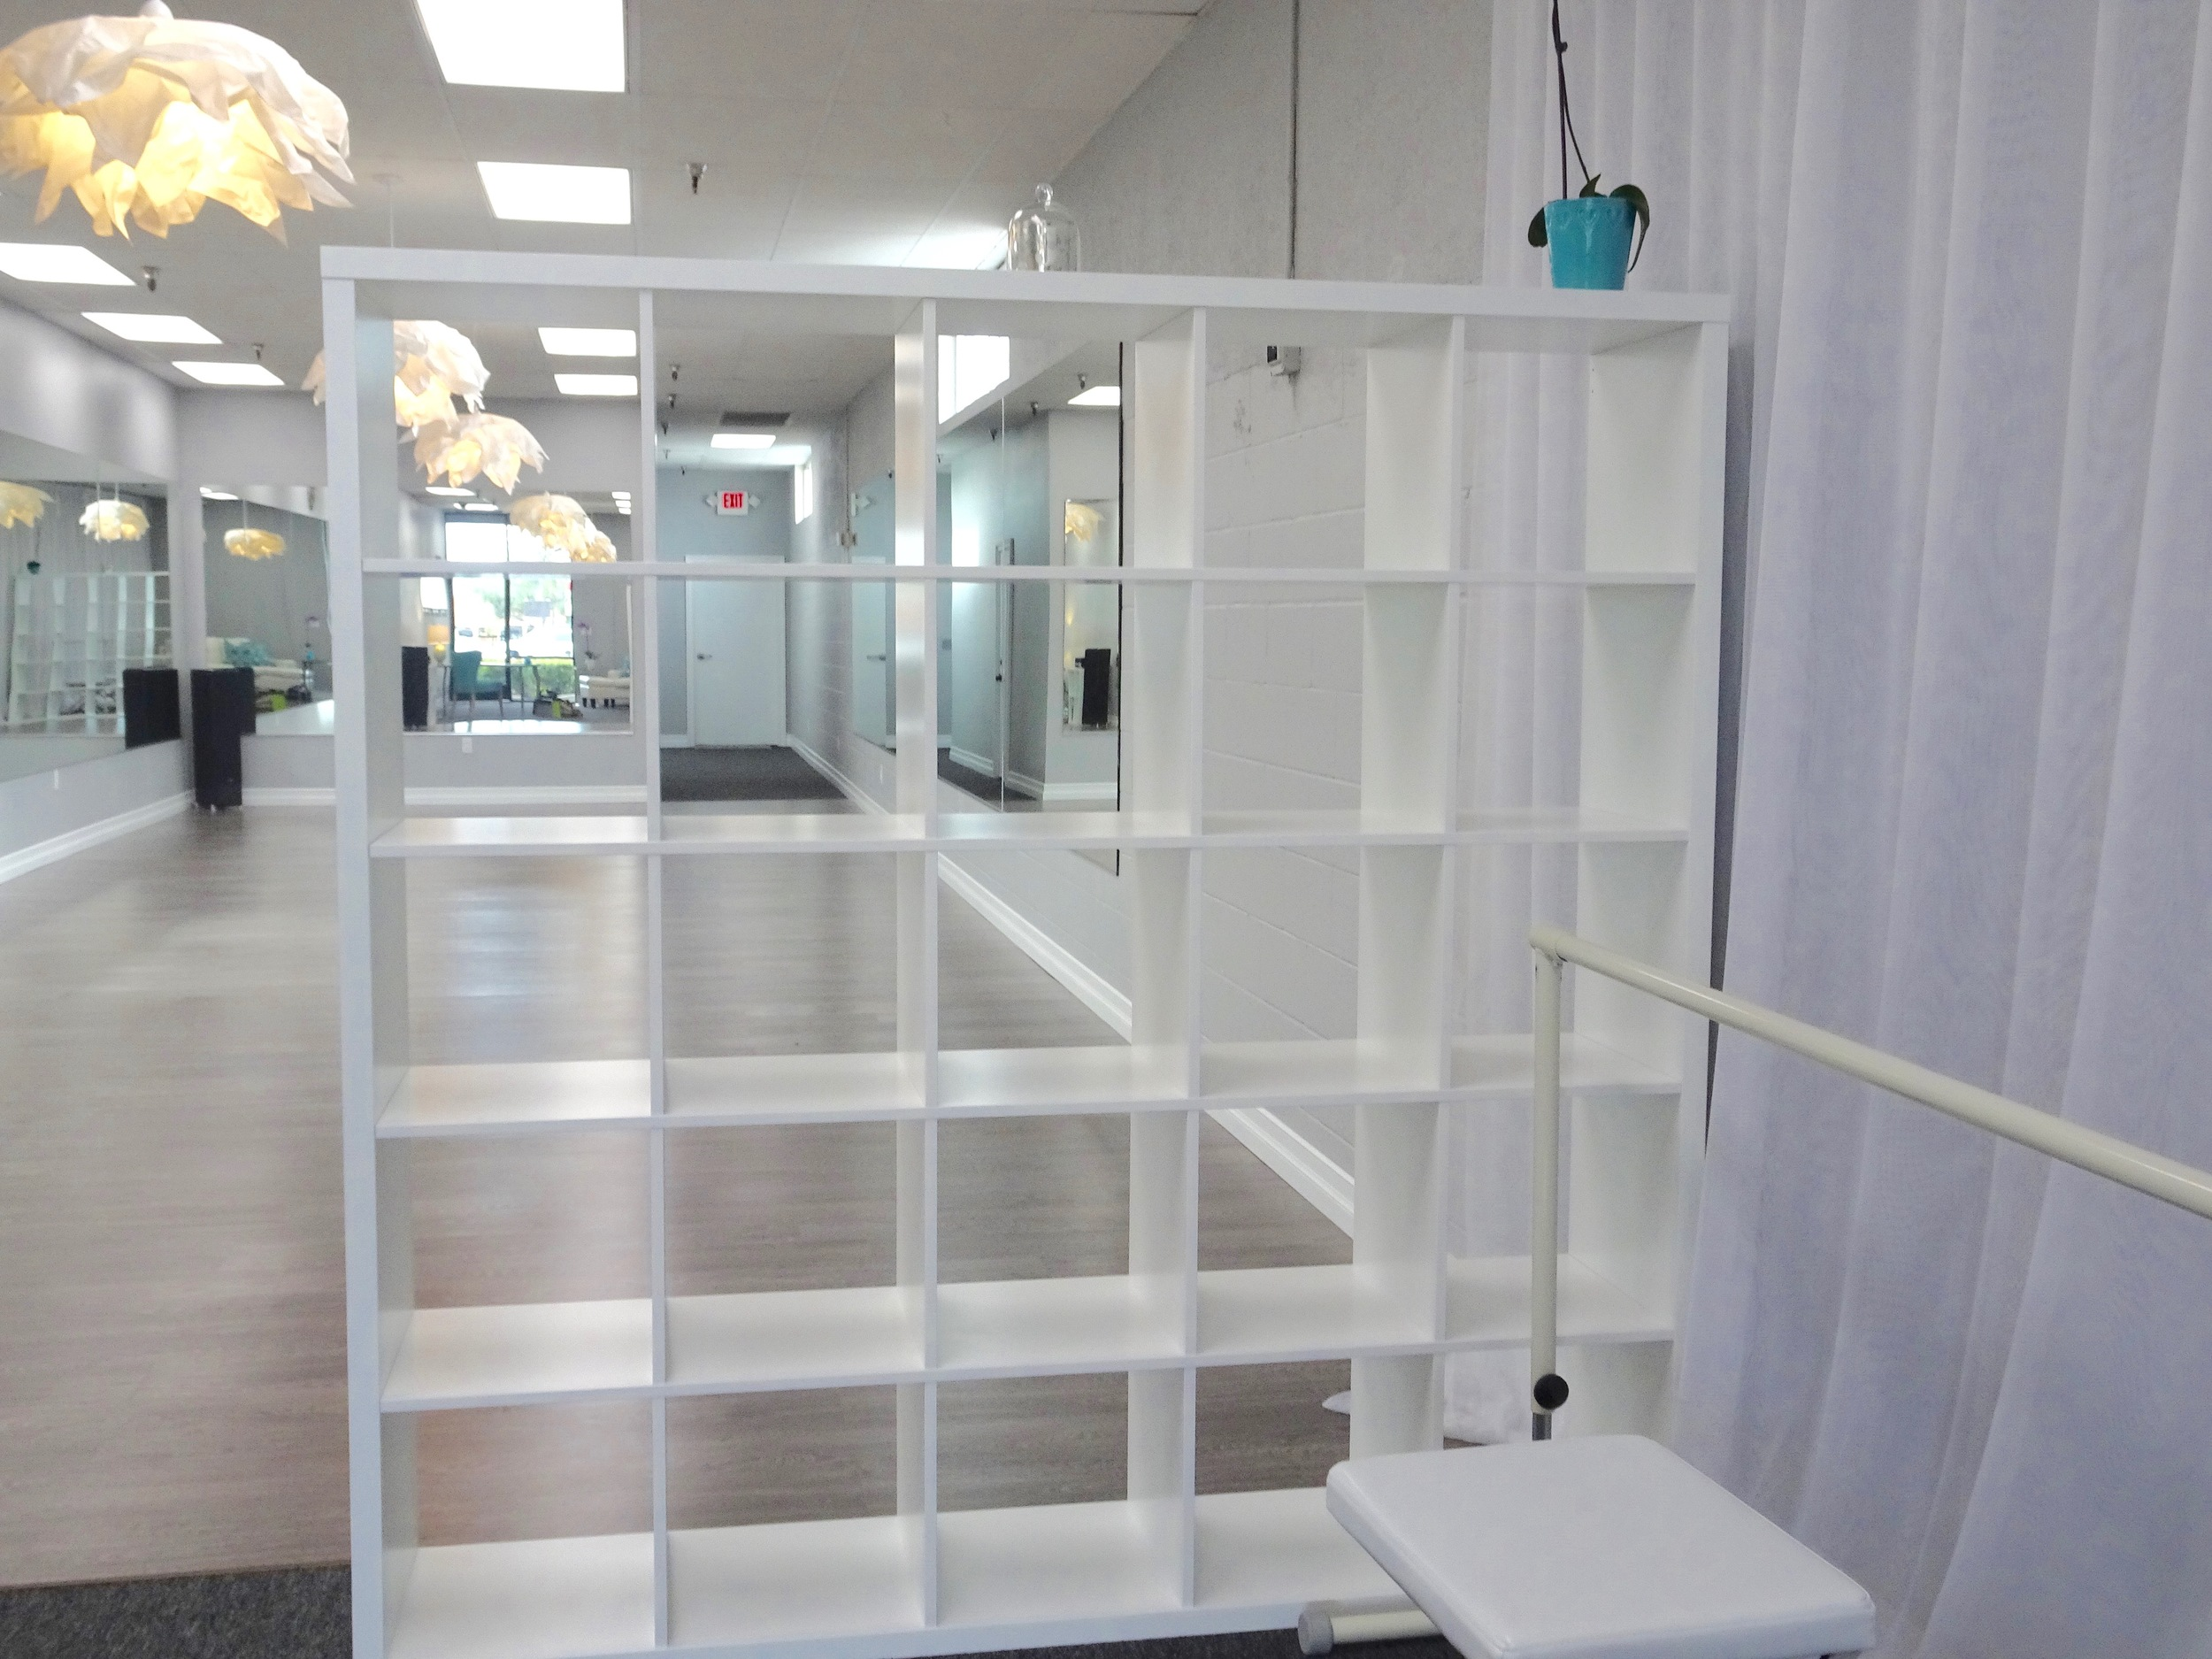 Shelving for guest belongings